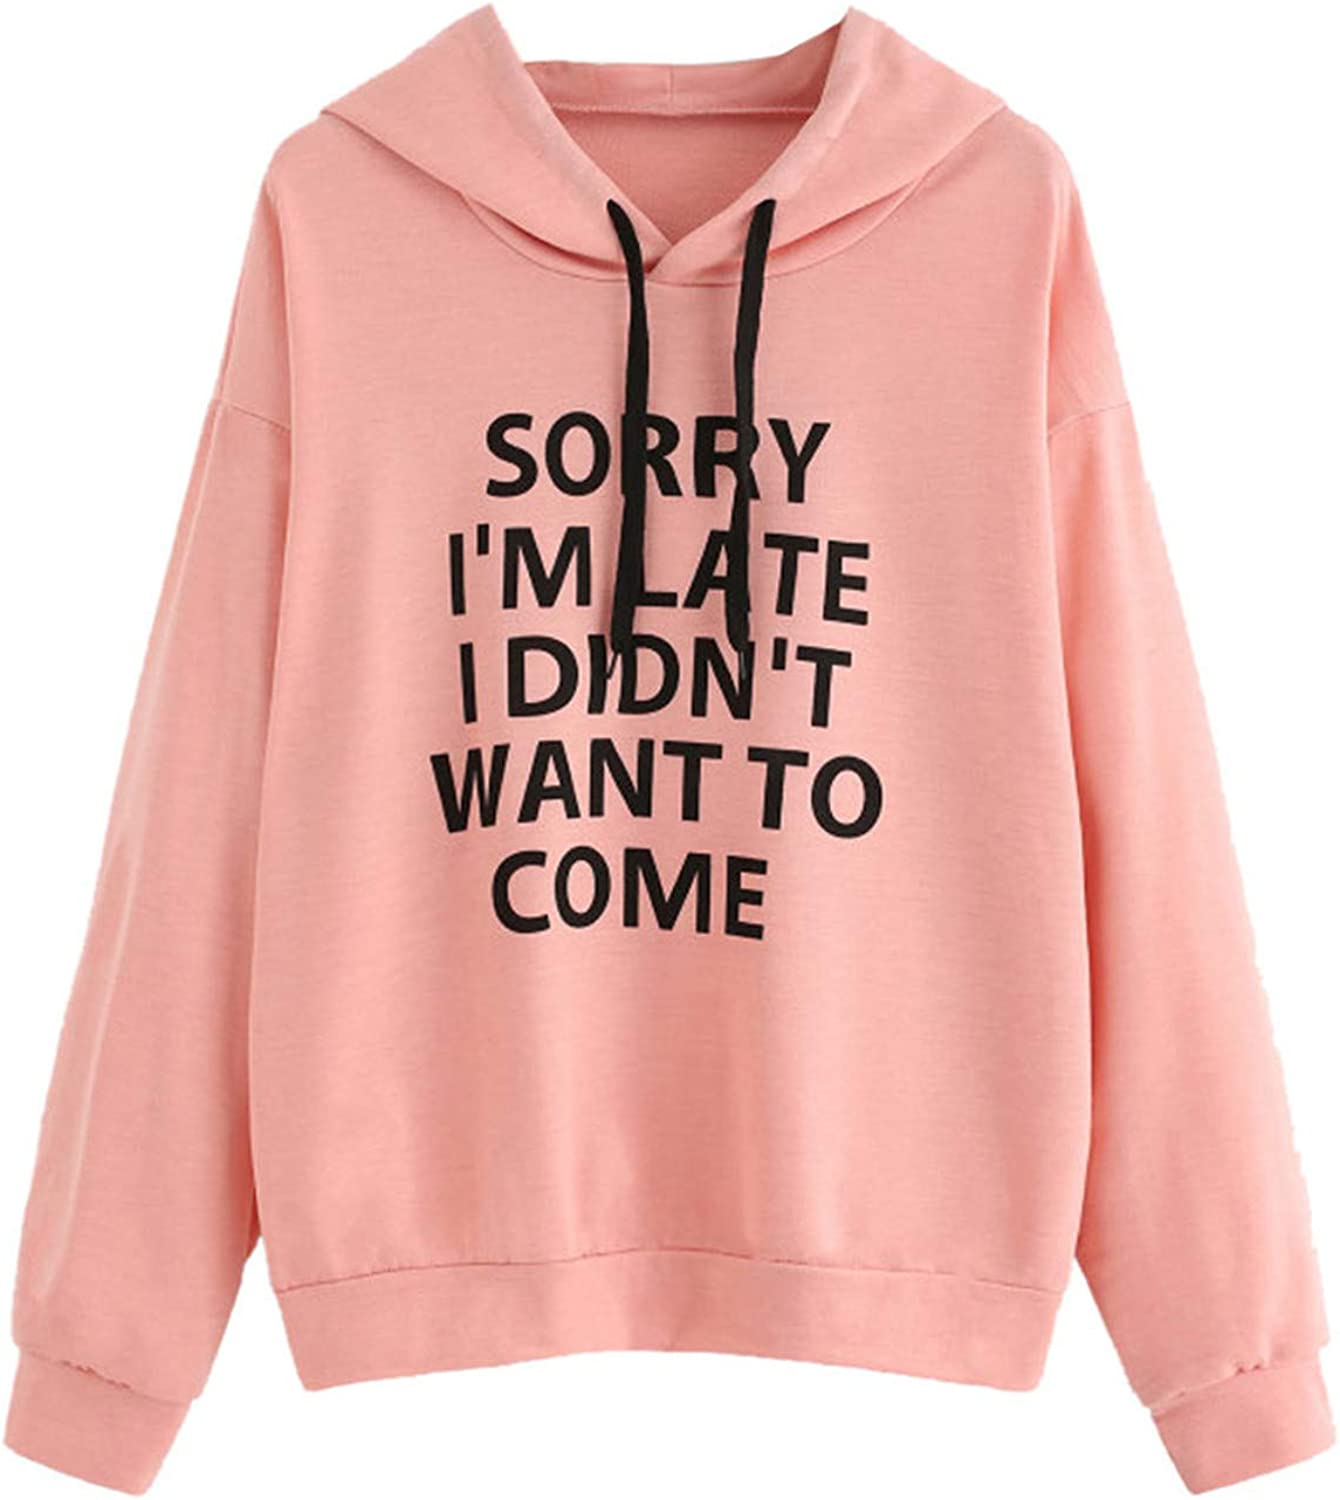 Women's Pullover Hoodies Casual Loose Letter Print Long Sleeves O-Neck Hooded Sweatshirts Blouse Tops for Teen Girls